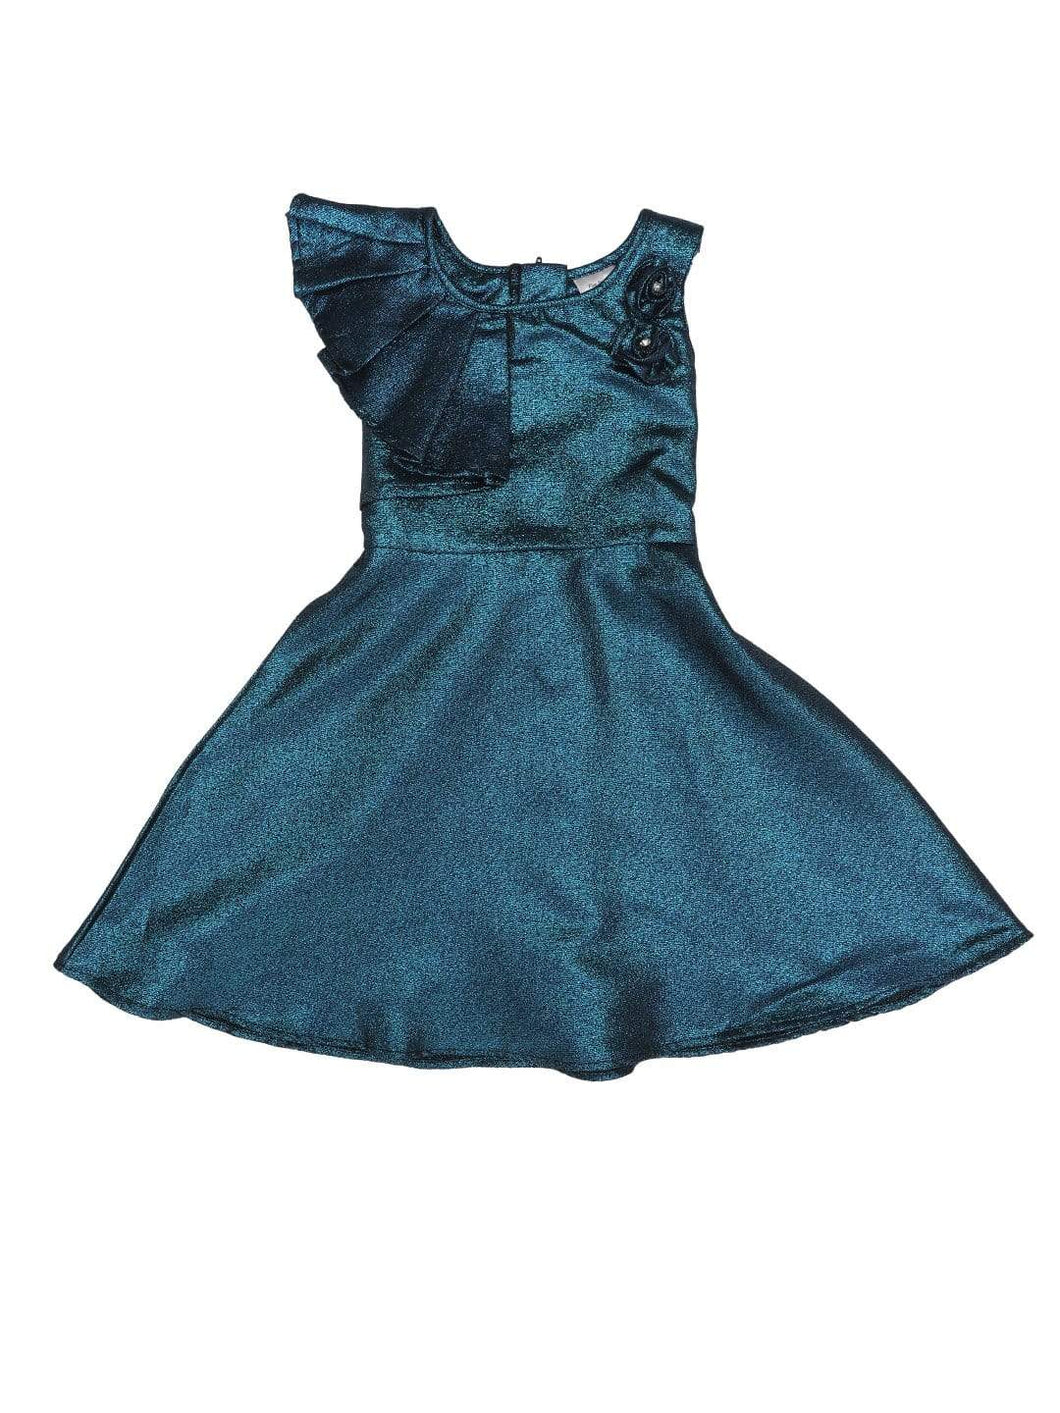 Blue Floral Jacquard Ruffle Dress